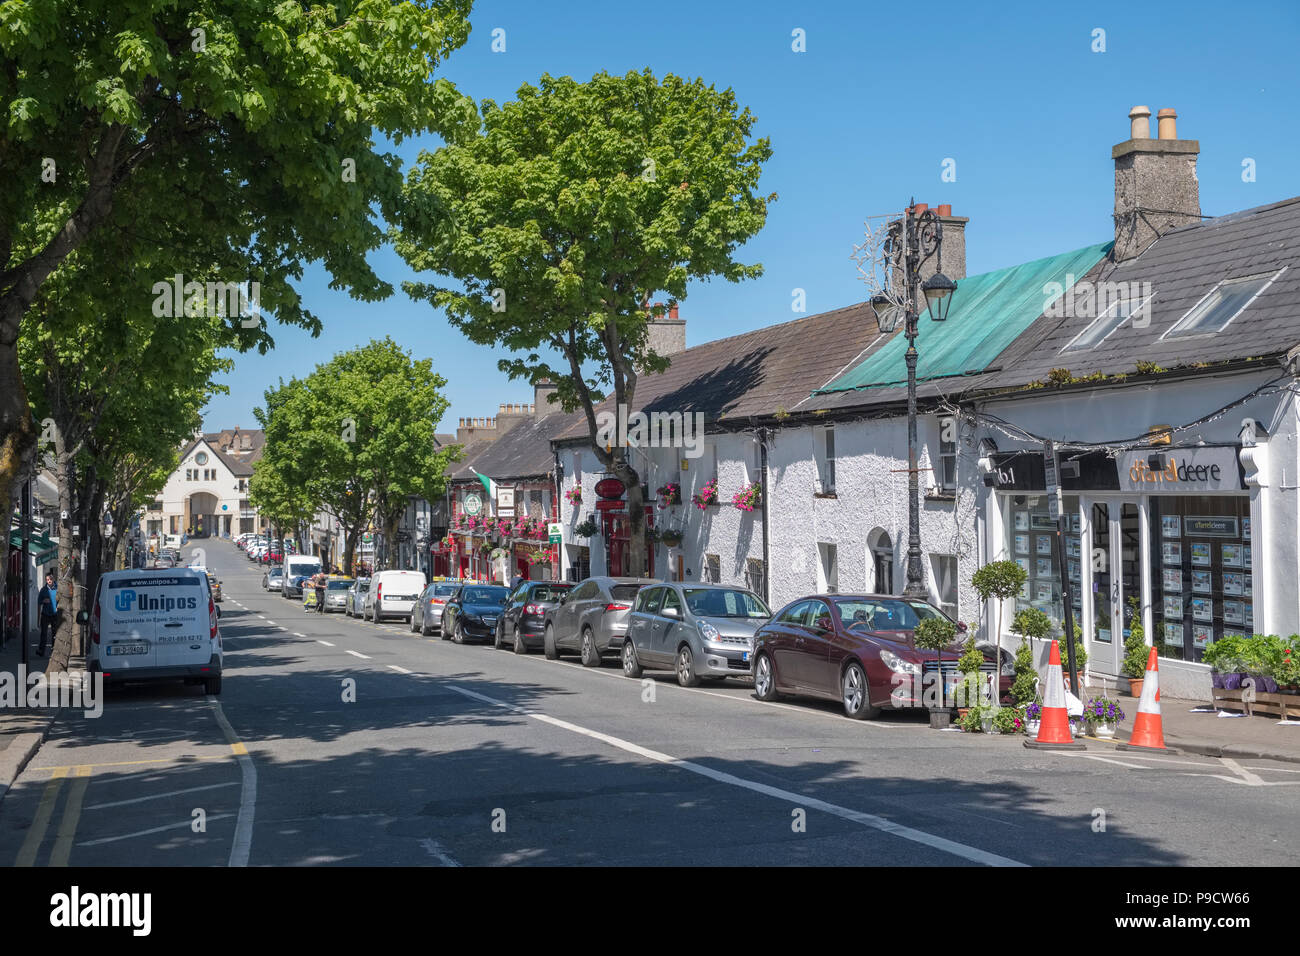 Shopping street in Malahide, a trendy affluent coastal town in Fingal, Leinster, County Dublin, Ireland, Europe - Stock Image